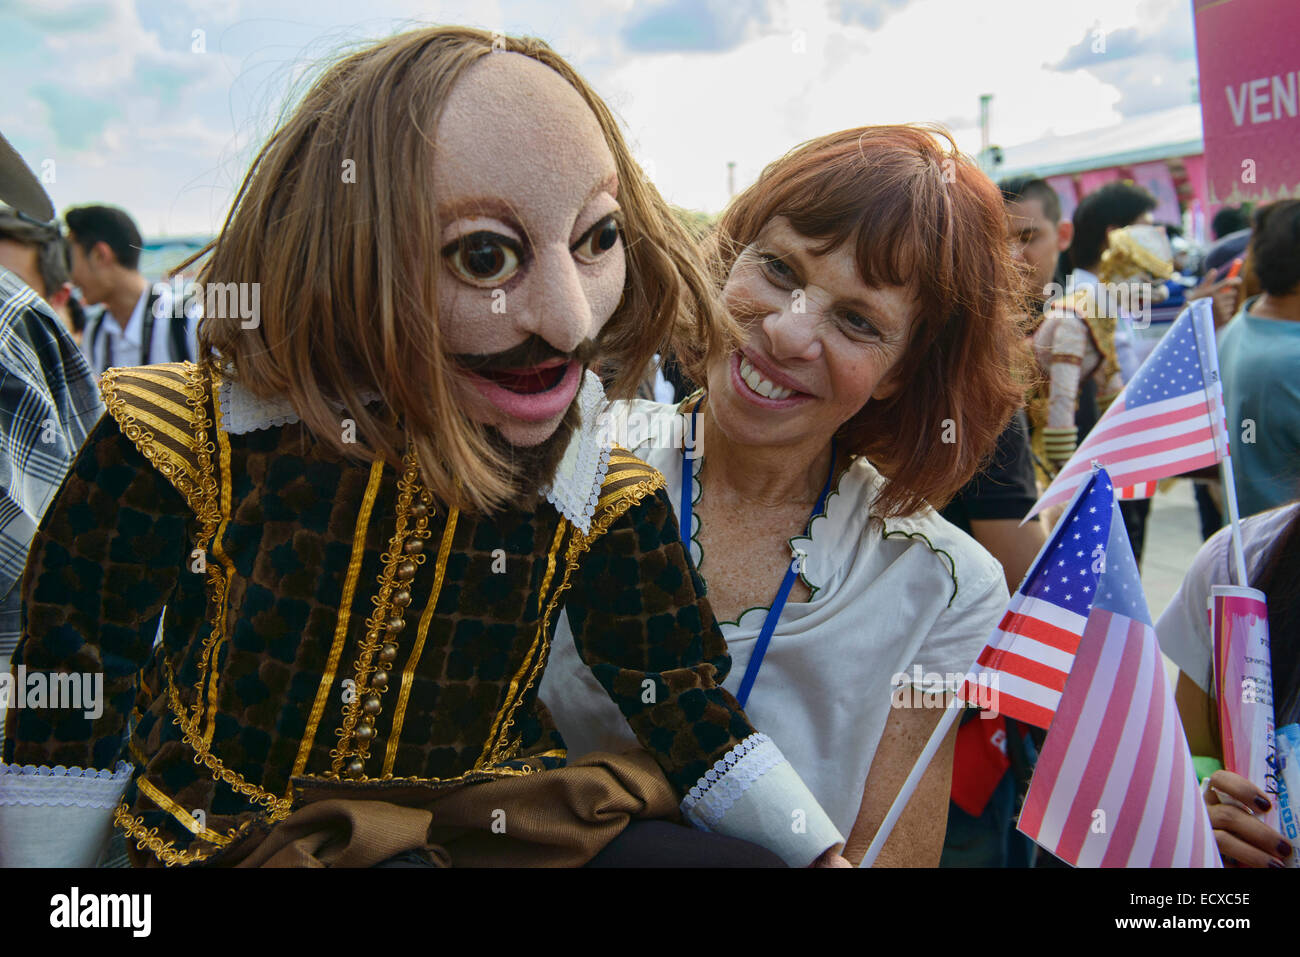 American puppet and puppeteer at the World Puppet Festival, Bangkok, Thailand - Stock Image